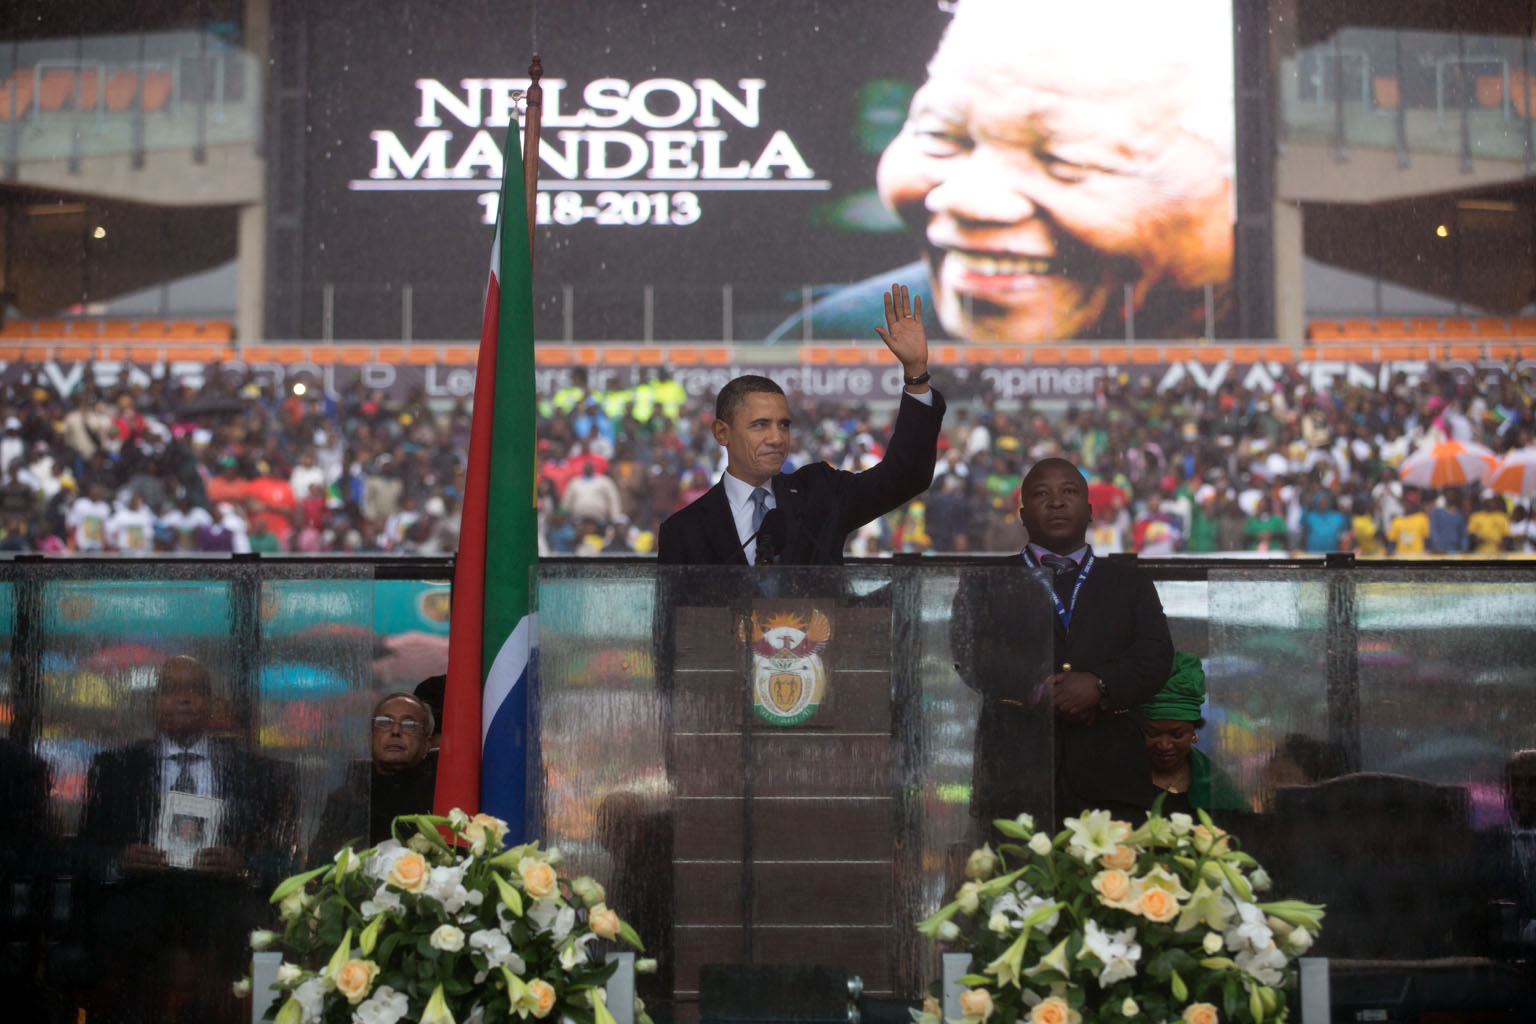 President Obama speaks at the memorial service for Nelson Mandela in Soweto, South Africa